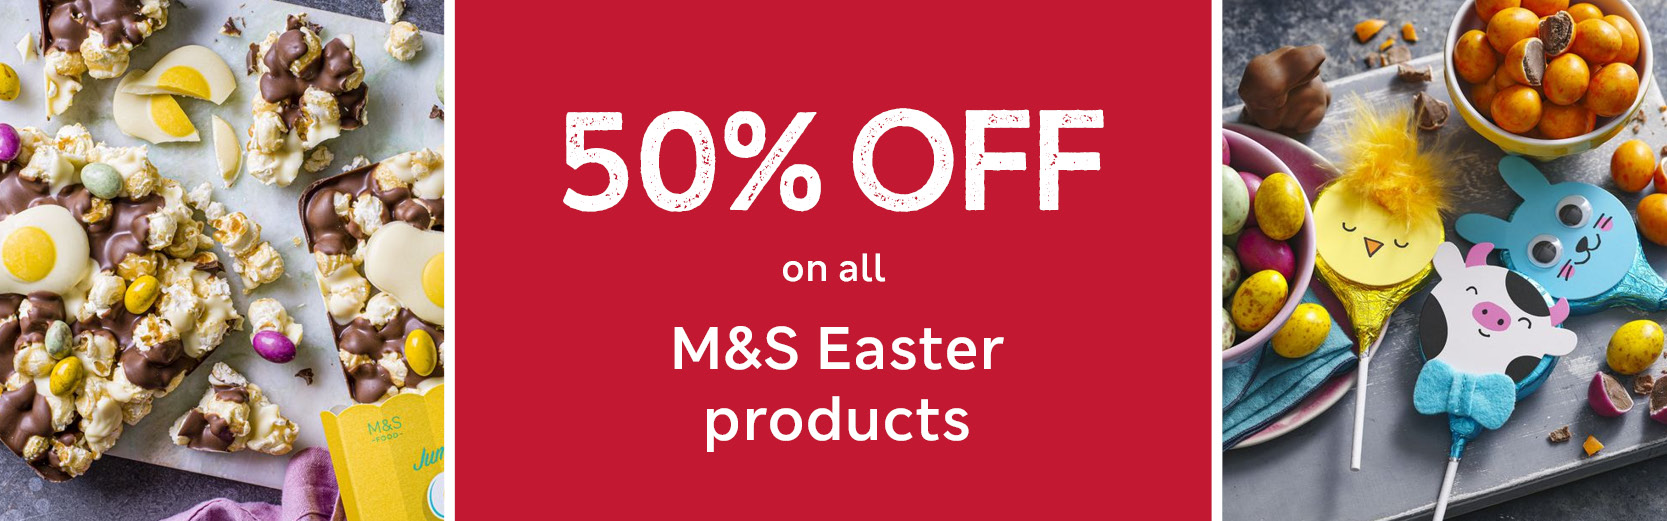 Winedrop M&S Easter